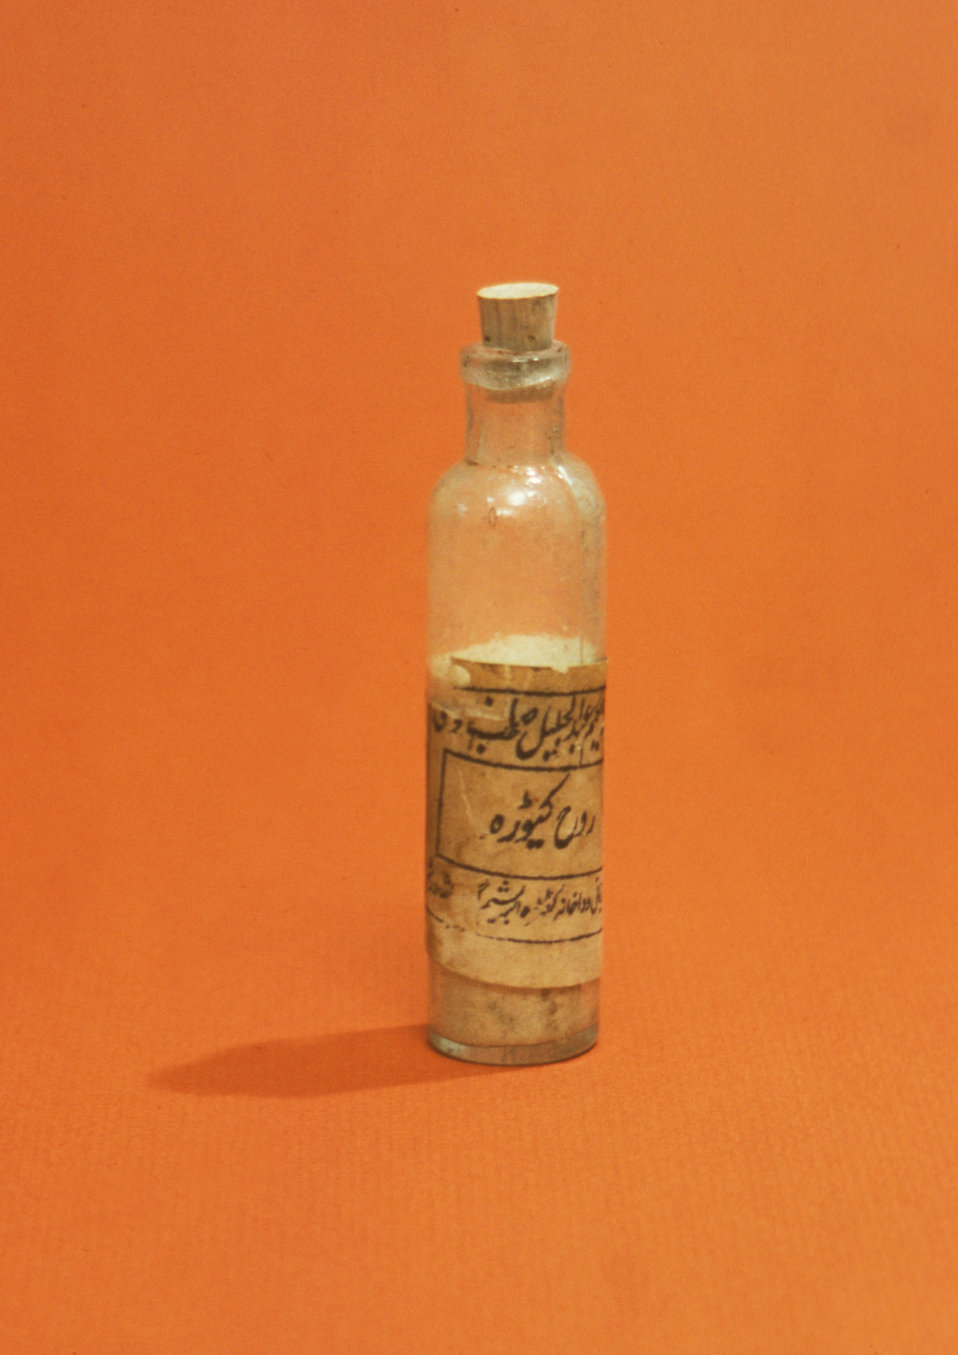 A bottle with medicine isolated on an orange background : Free Stock Photo